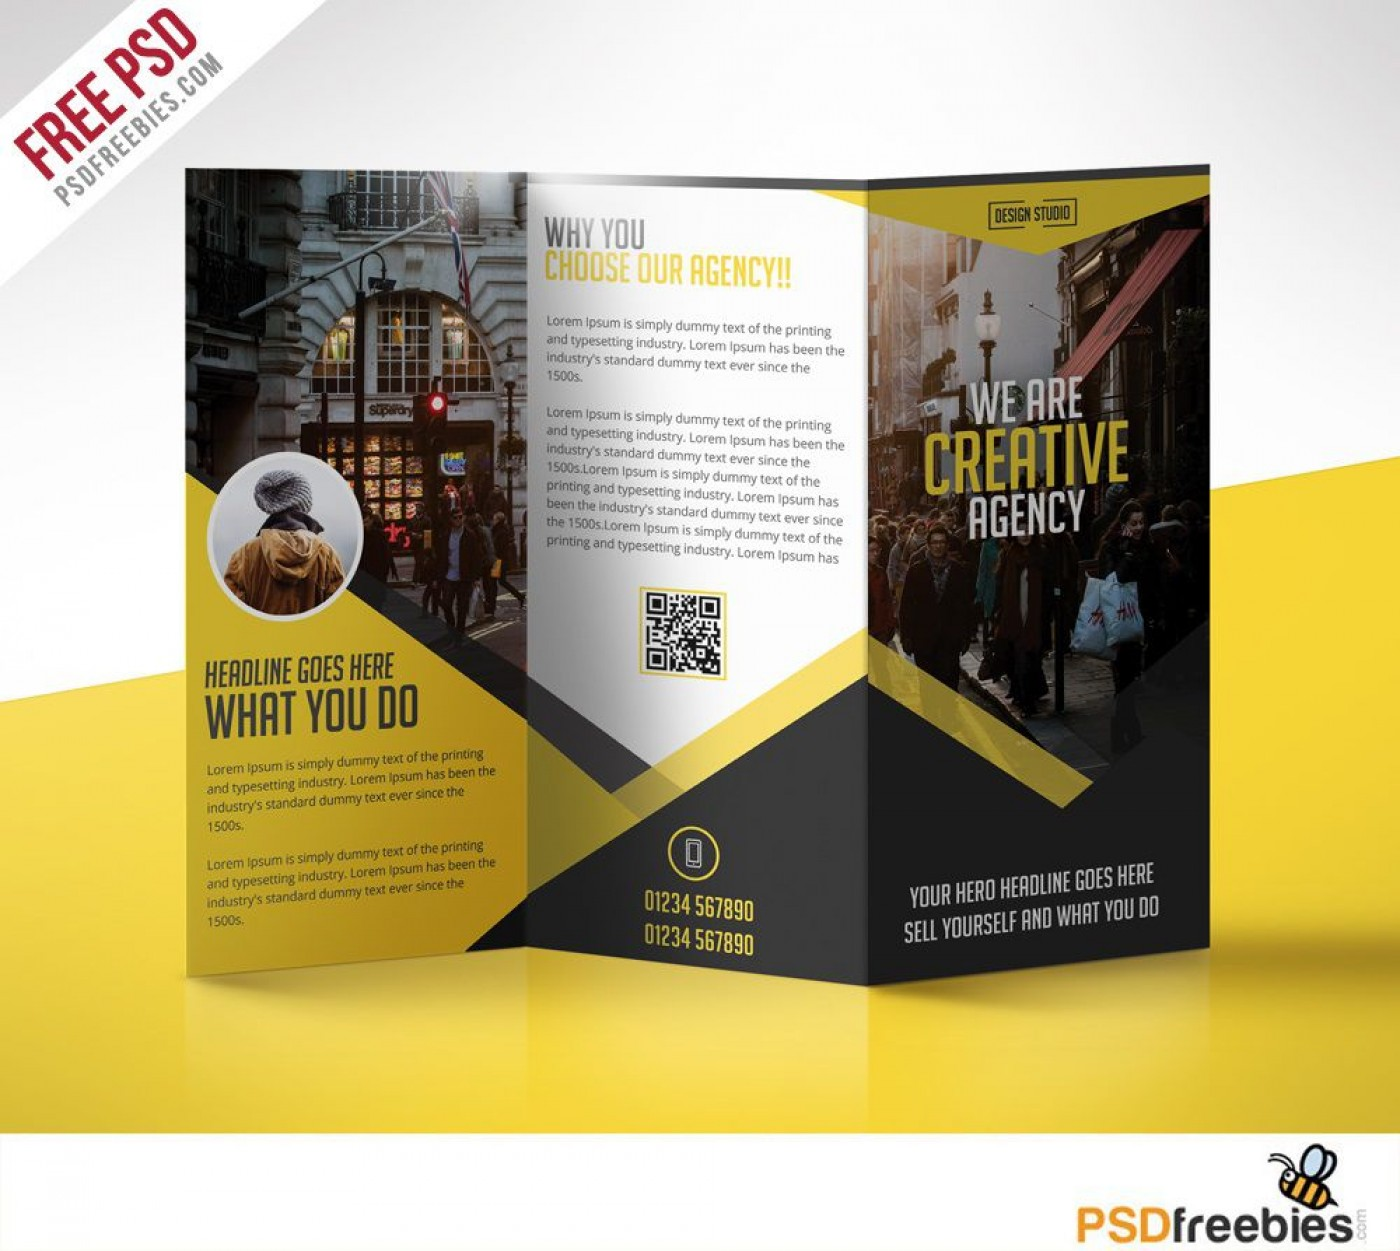 008 Breathtaking Photoshop Brochure Design Template Free Download Photo 1400